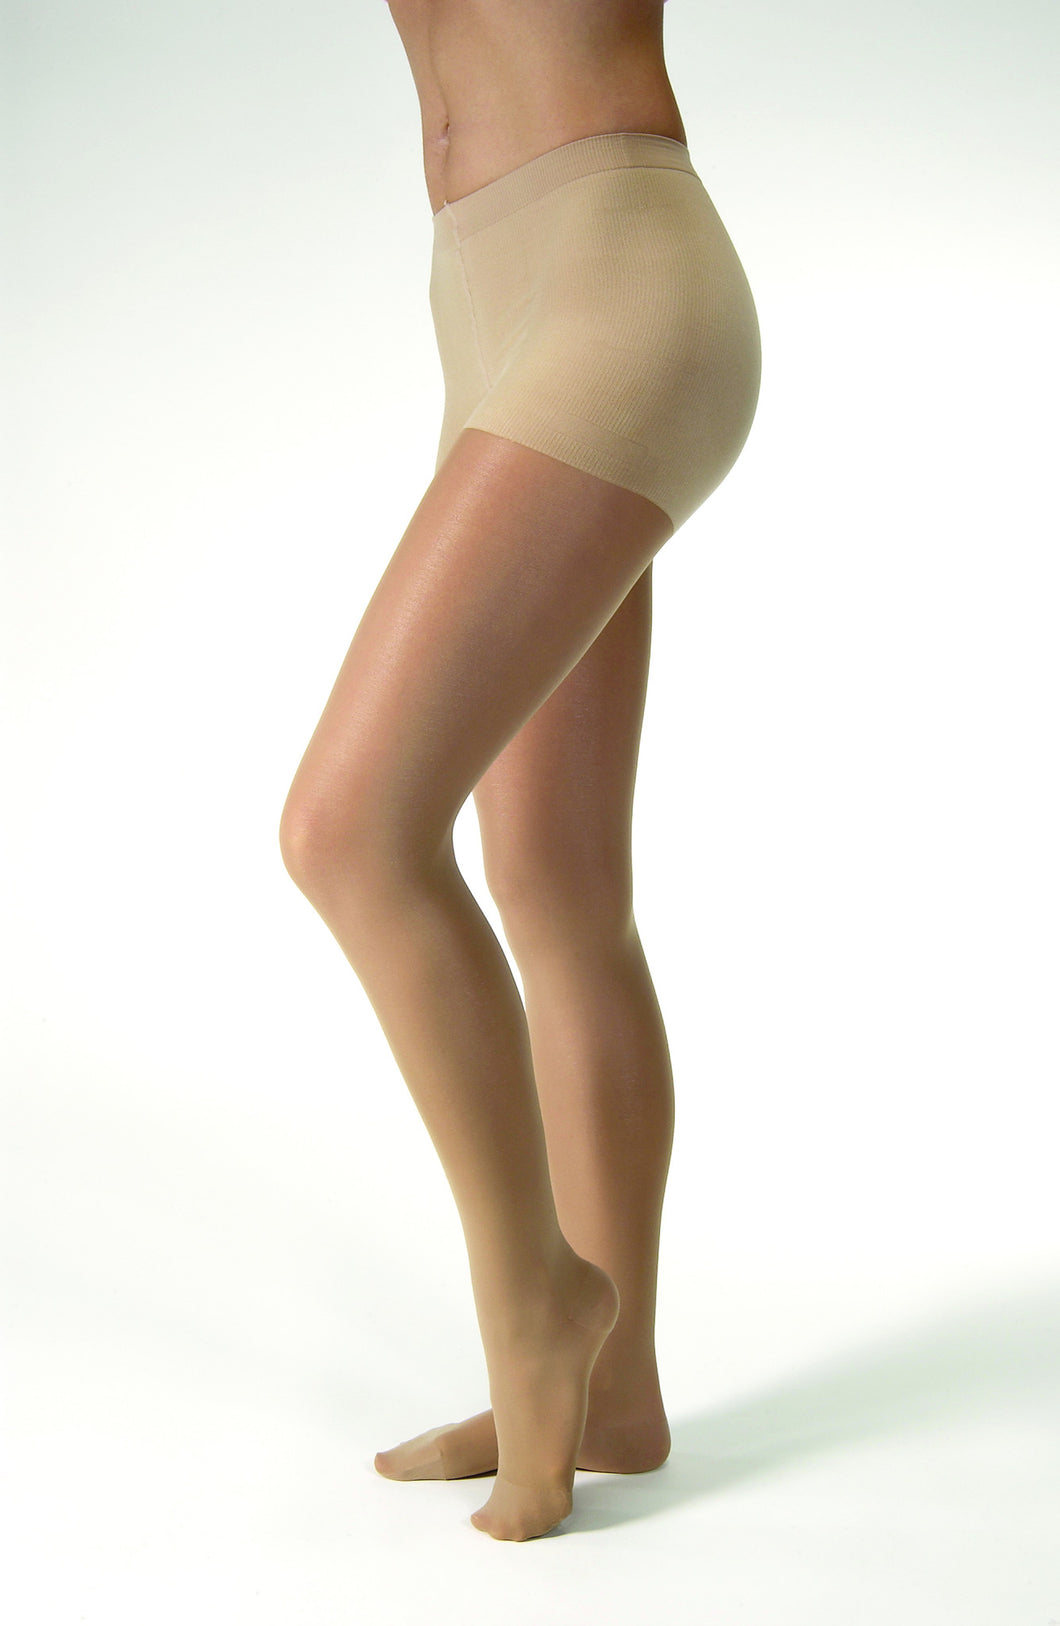 Ultrasheer | Waist High Compression Stockings | Closed Toe | 8-15 mmHg